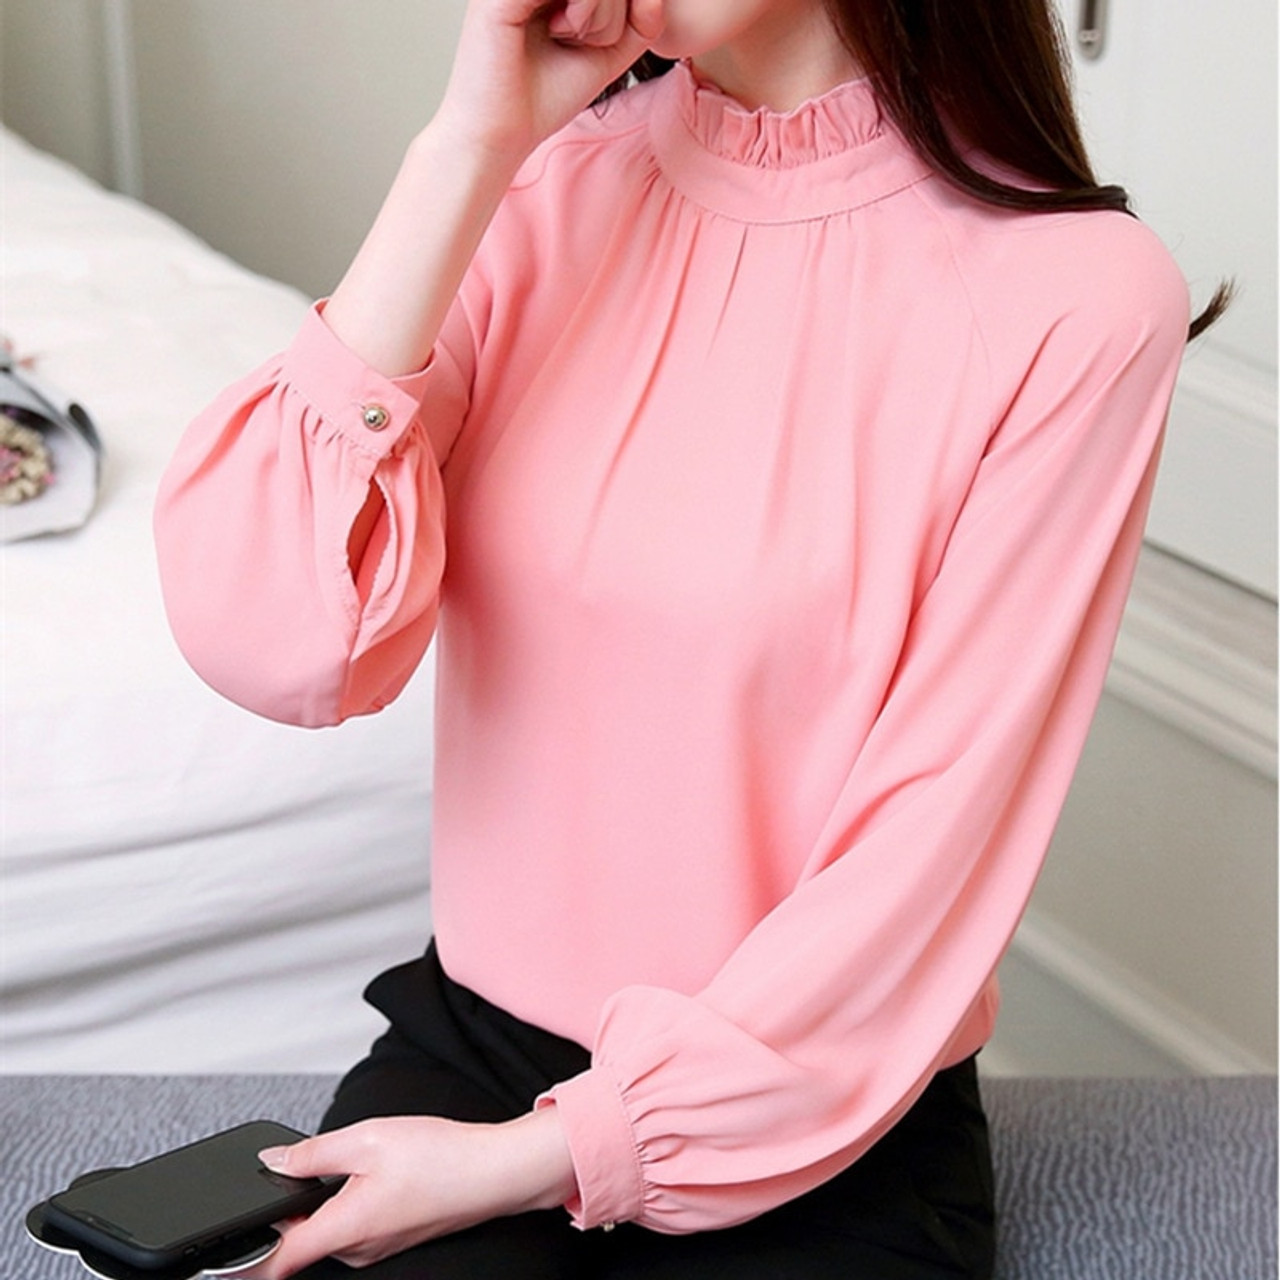 c89d8def6dc ... New Autumn 2018 womens tops and blouses Long Sleeve Chiffon Blouse  Mujer Fashion Ladies Shirts Tops ...